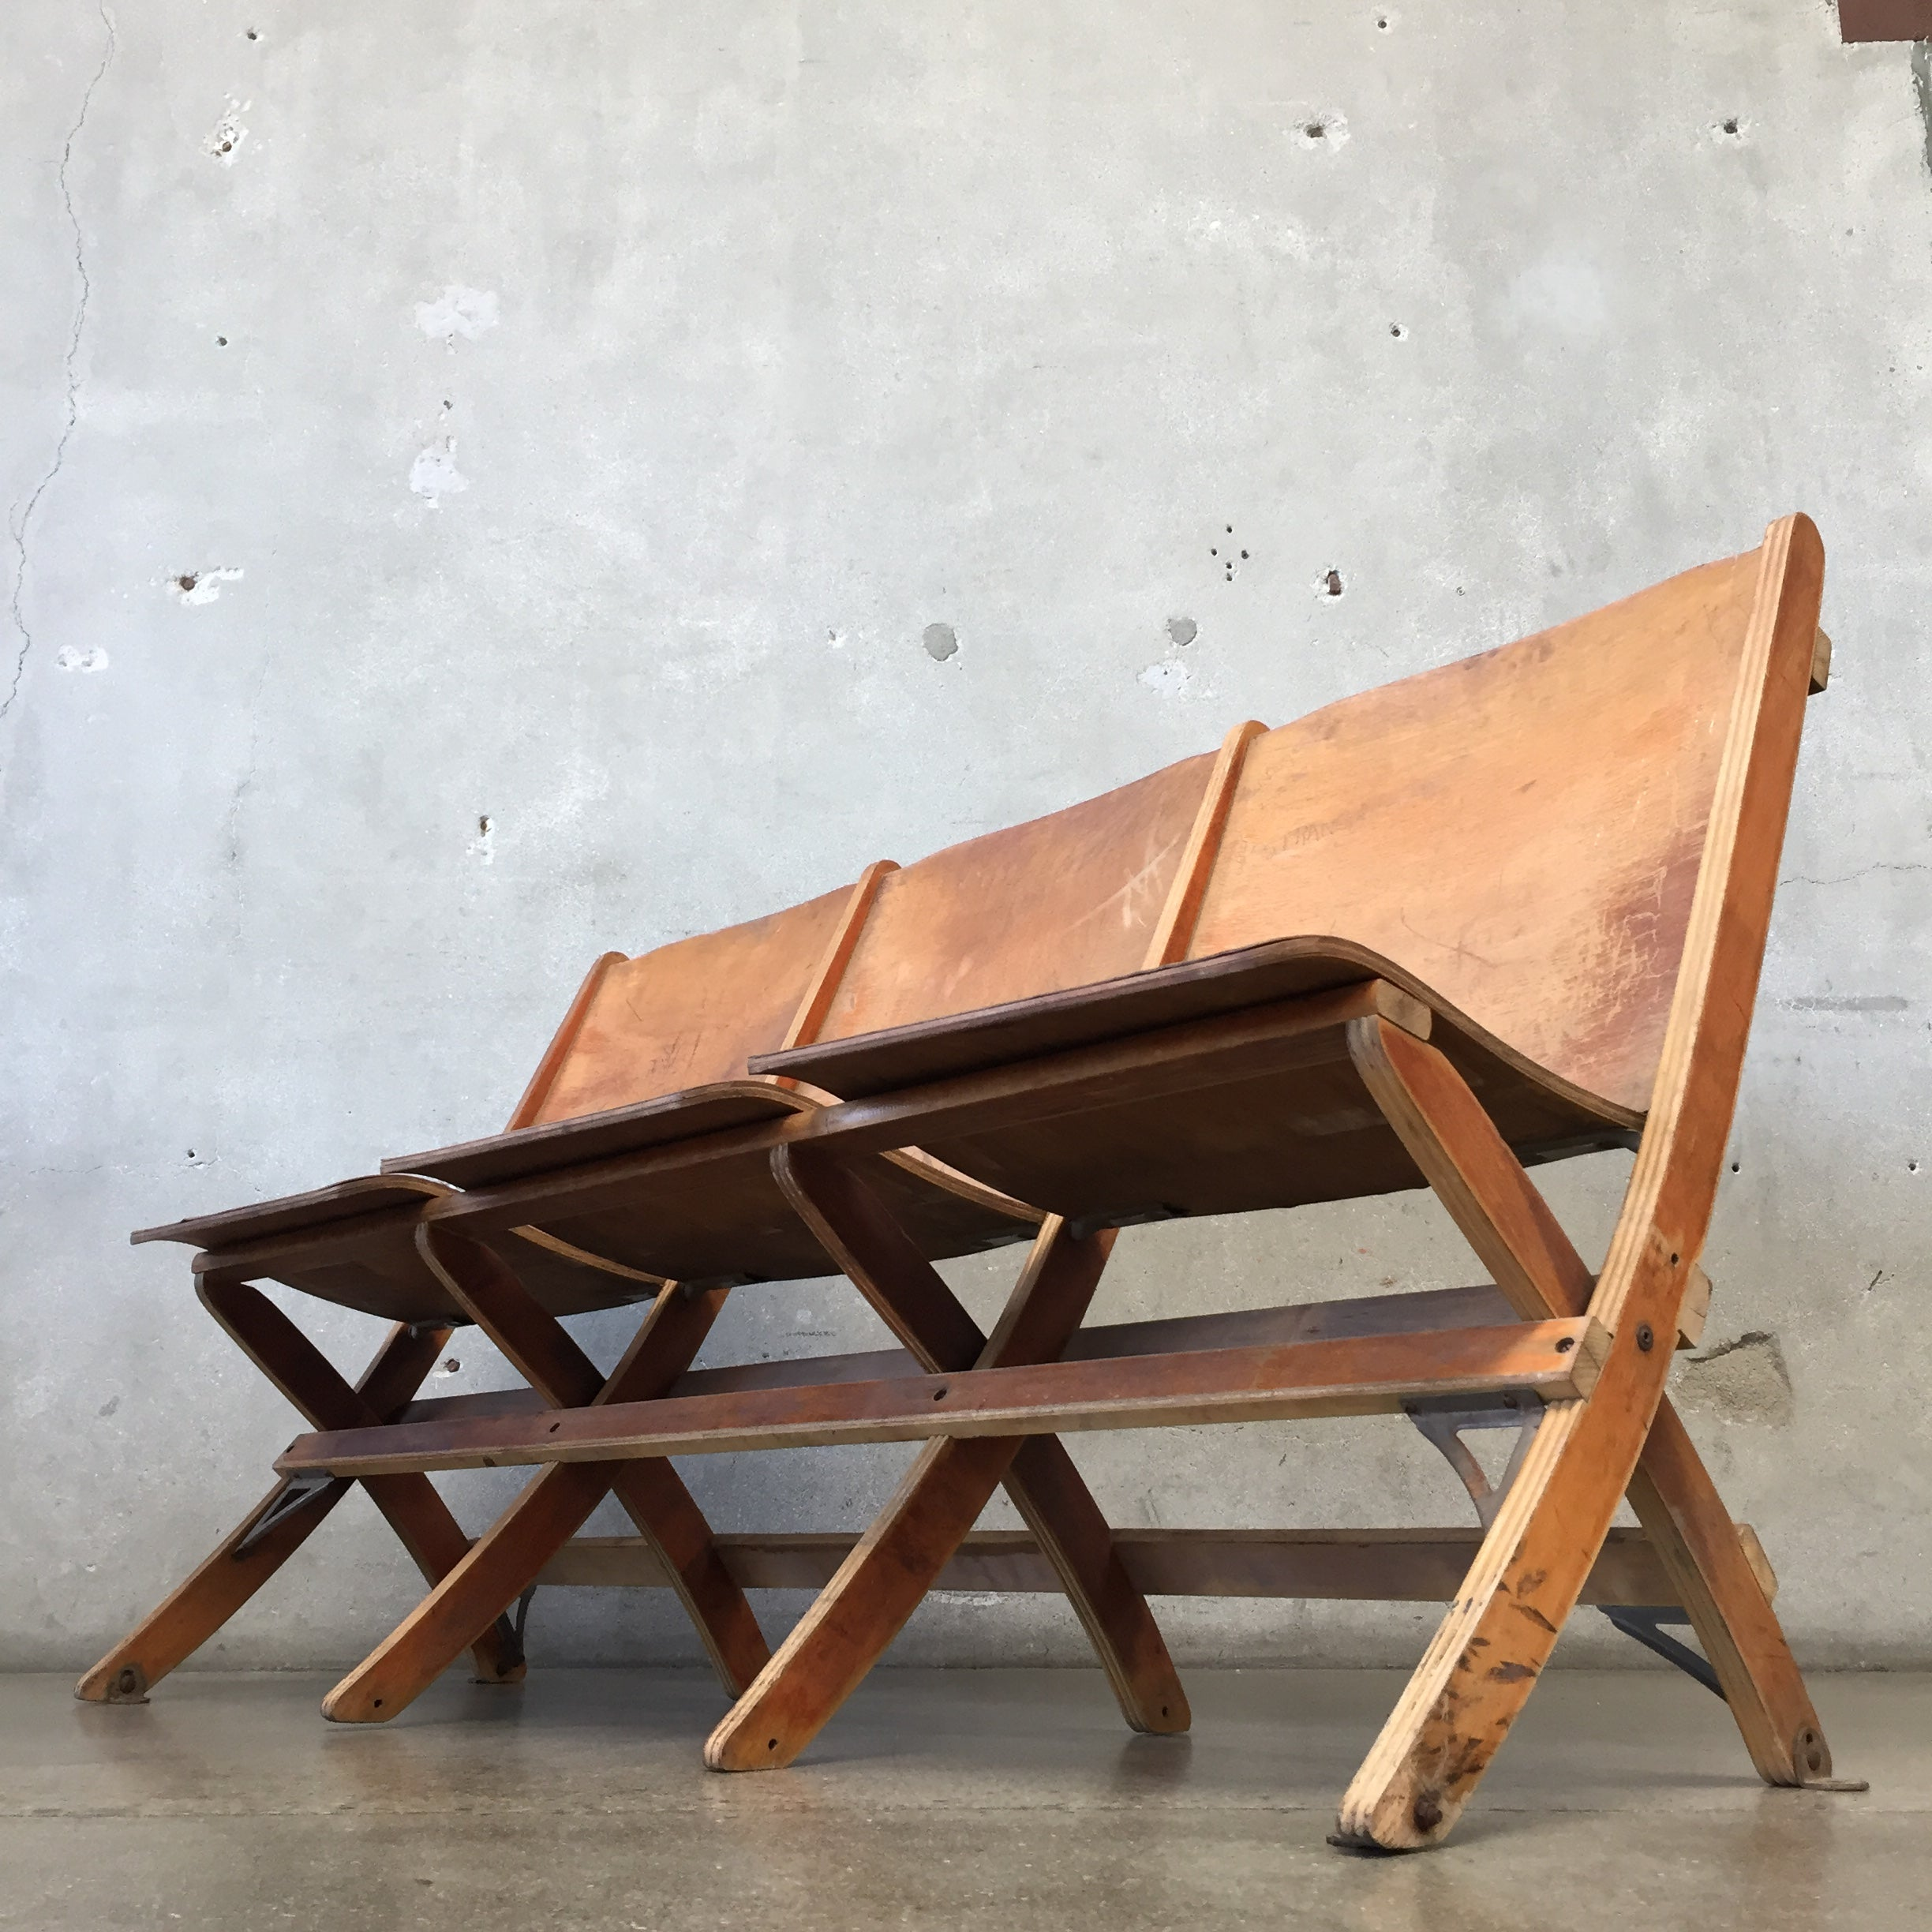 Swell Vintage Theater Bench Caraccident5 Cool Chair Designs And Ideas Caraccident5Info